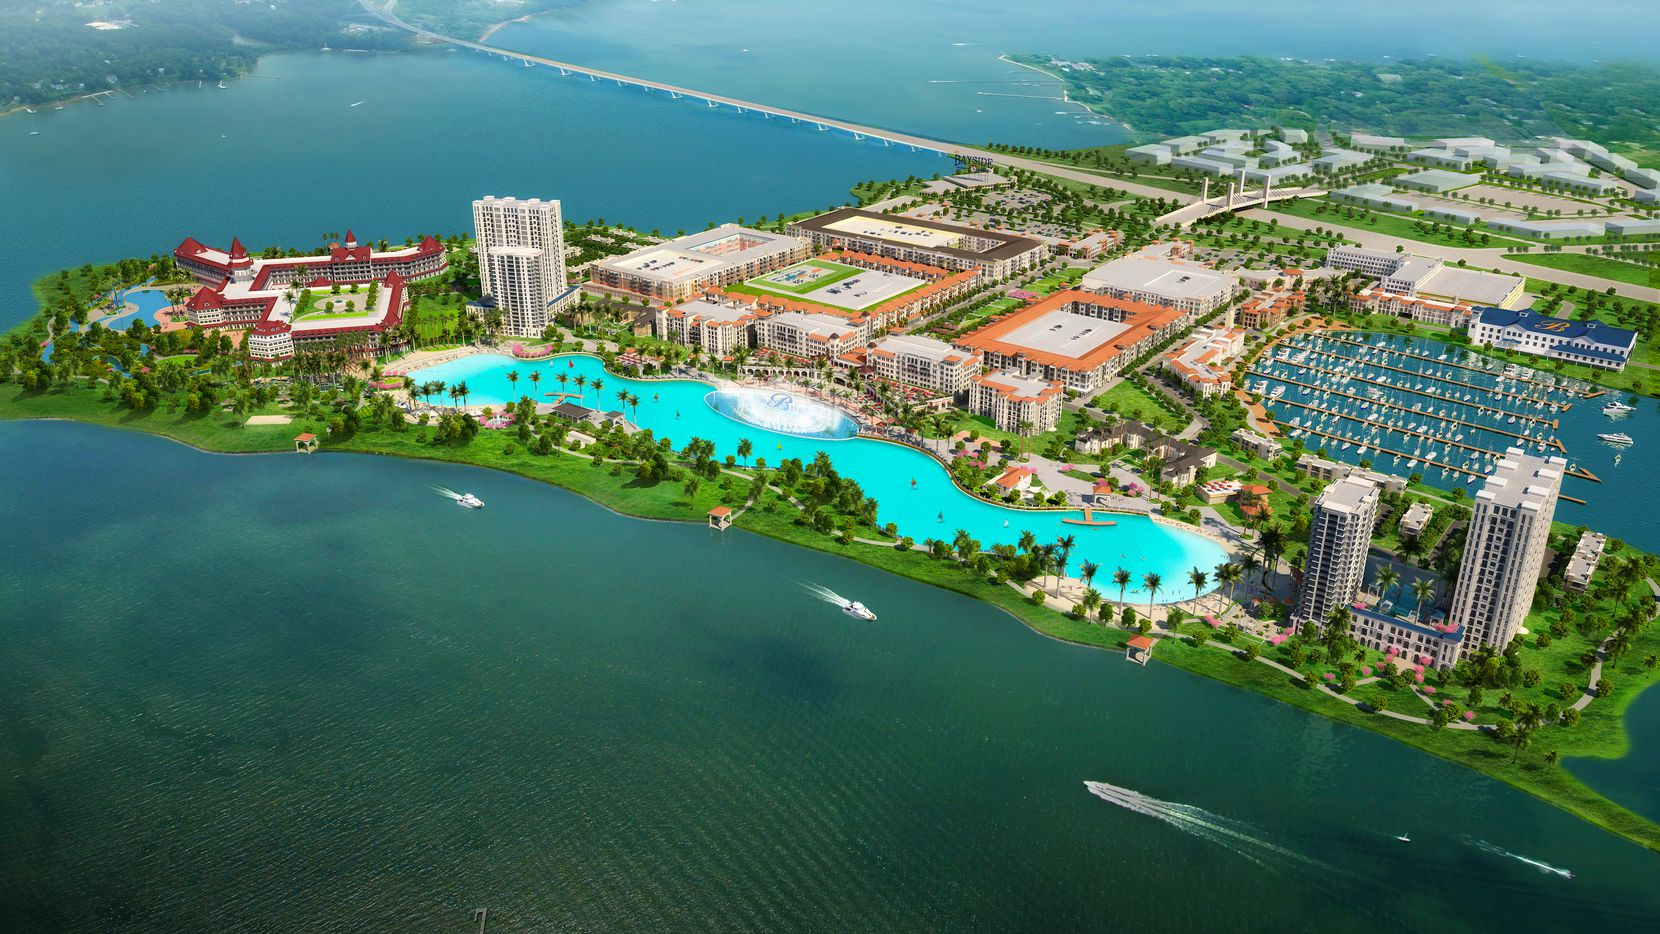 The $1 billion Bayside project was originally planned with commercial and residential construction surrounding a Crystal Lagoon water feature.